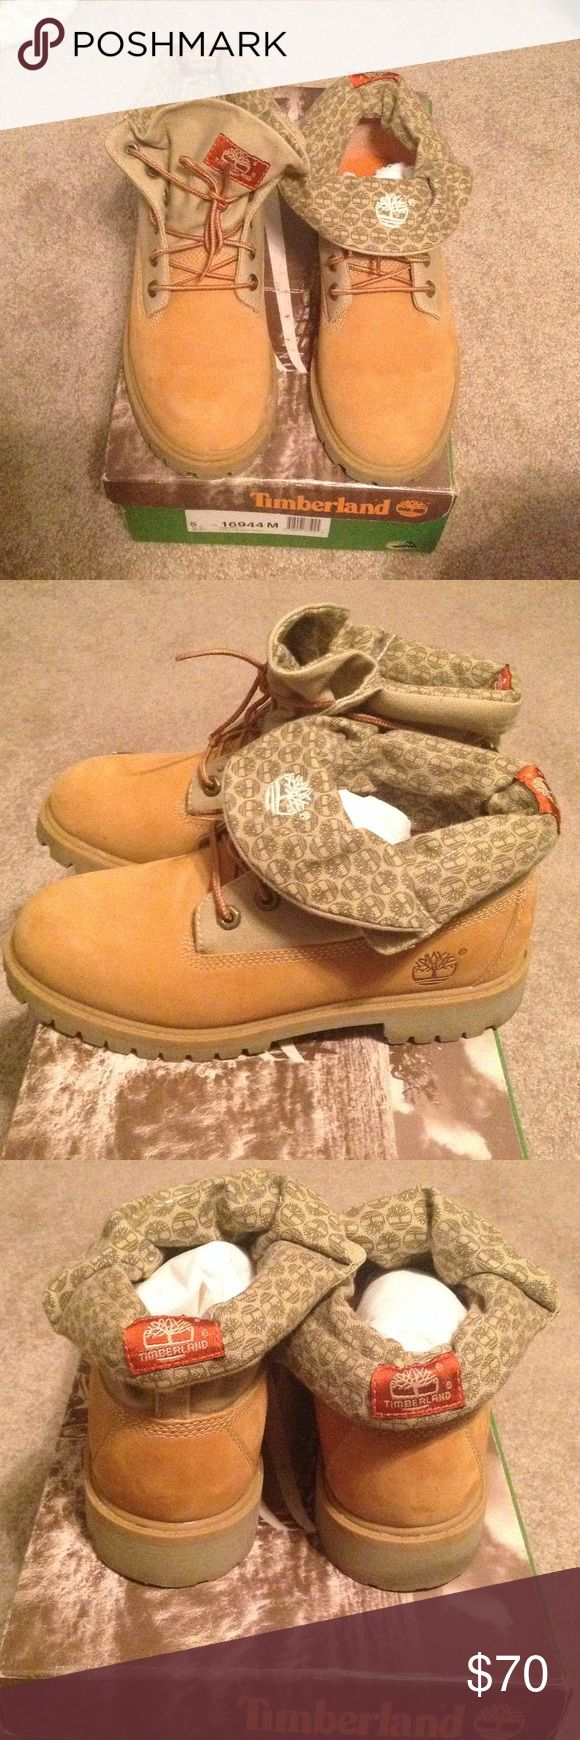 Roll top Wheat Timberlands Wheat roll top Timberland boot. Used handful of times. One scuff pictured in last picture. In really good condition Timberland Shoes Boots